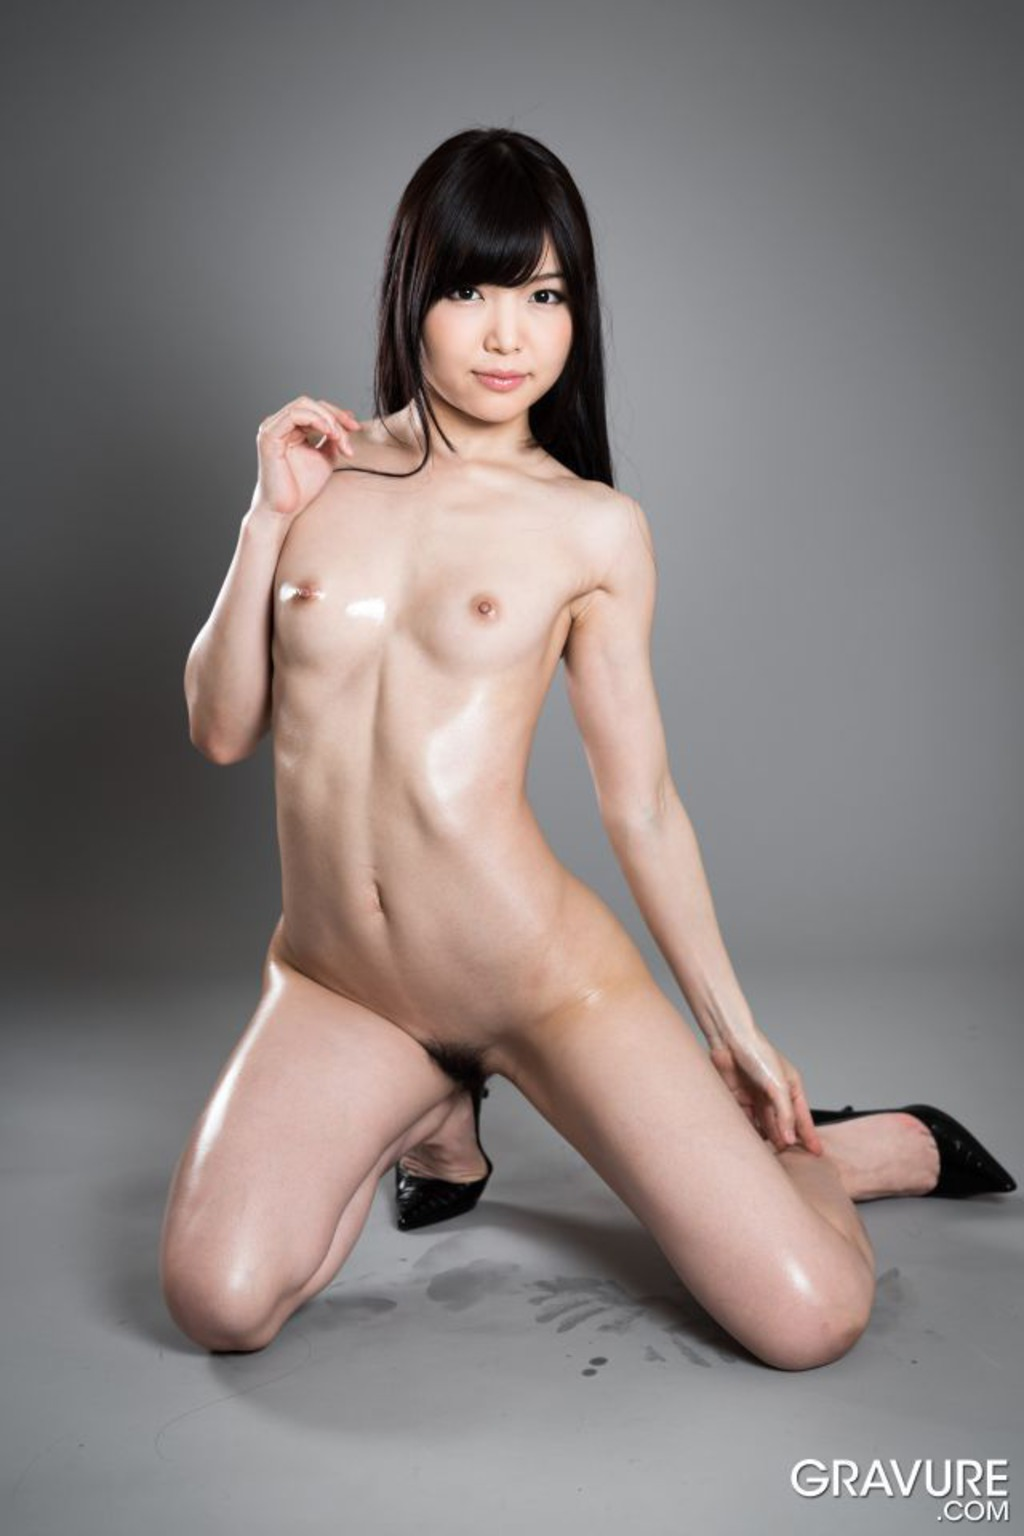 shino aoi gets naked   picture 7 12 babeimpact